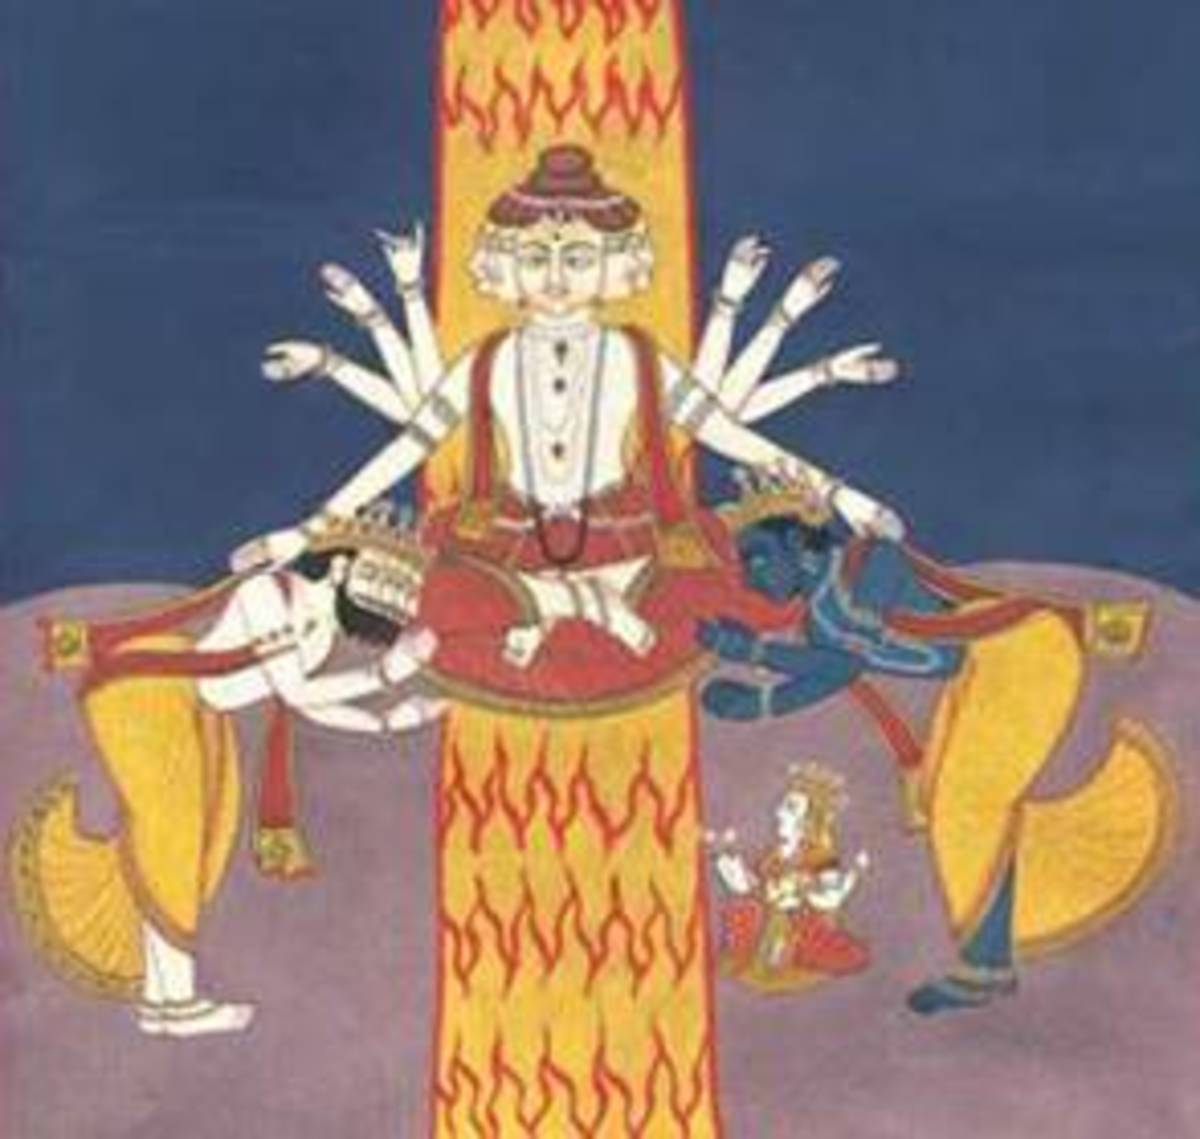 Shiva reveals himself as Brahman (the foundation of all existence) to Brahma and Vishna.